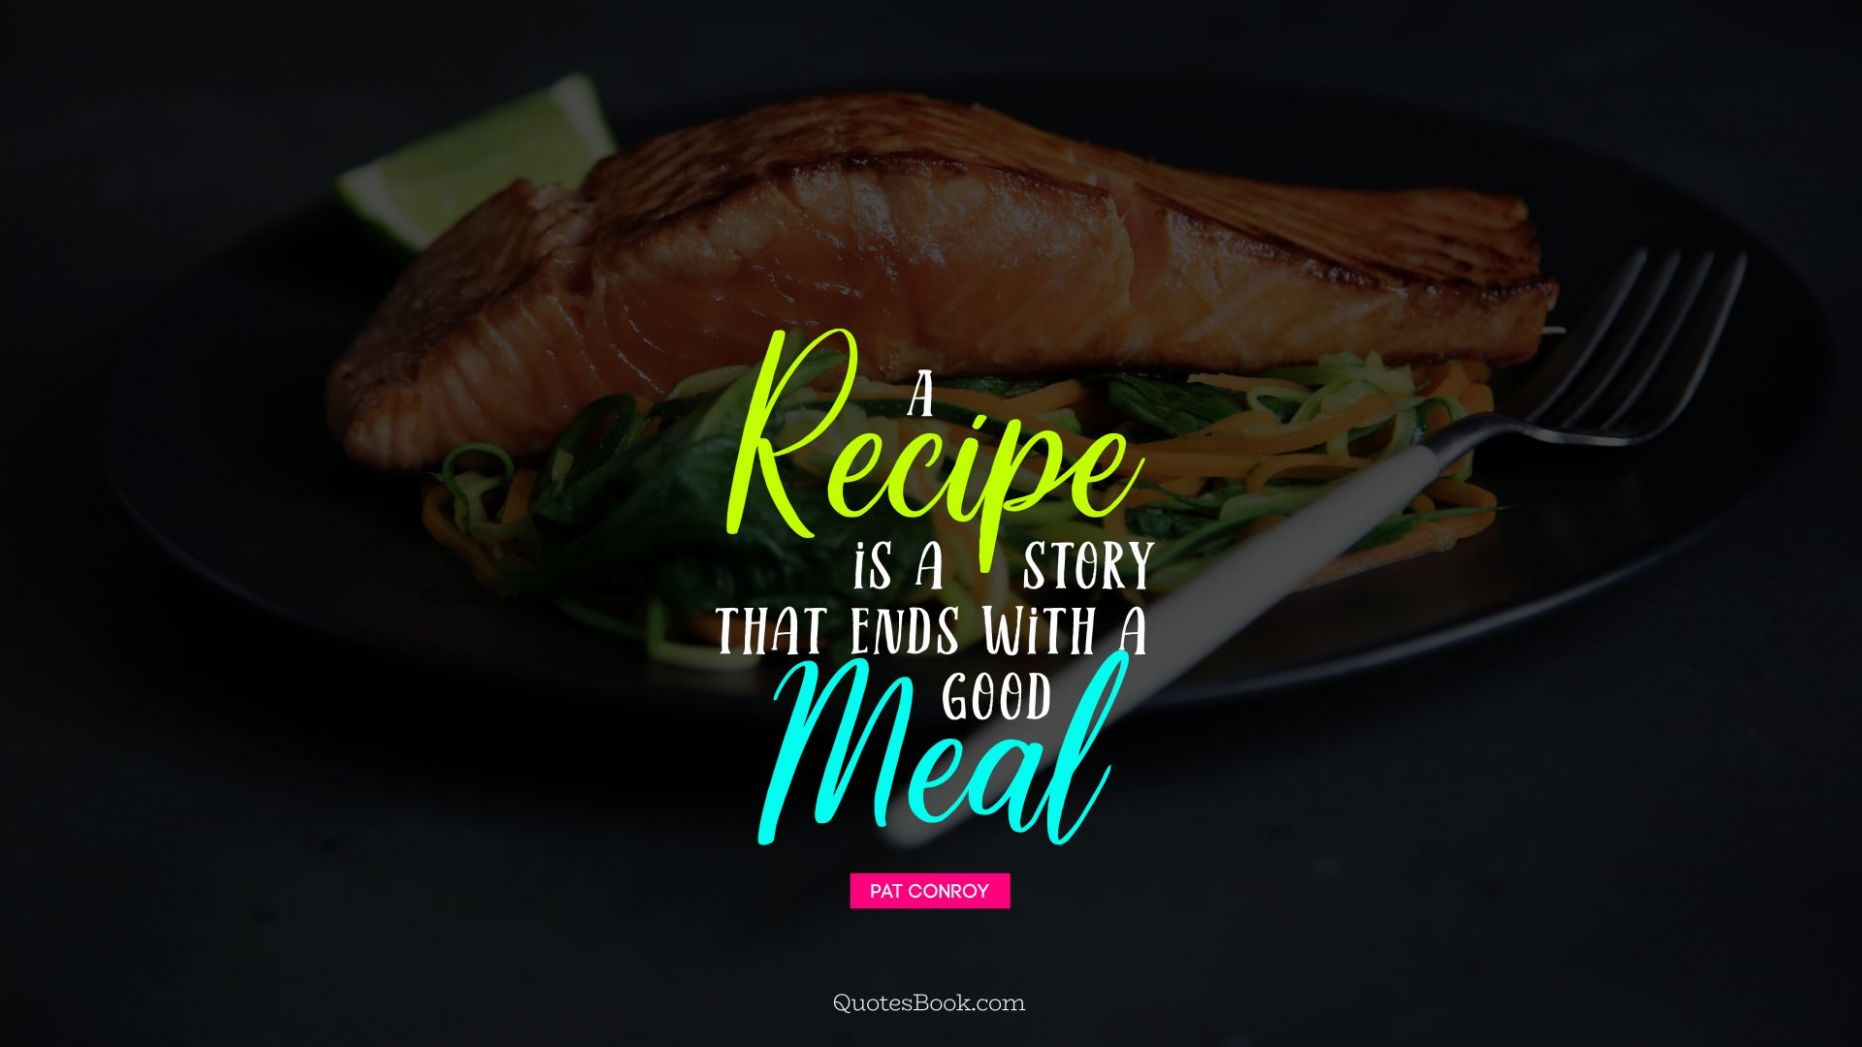 A recipe is a story that ends with a good meal. - Quote by Pat ..